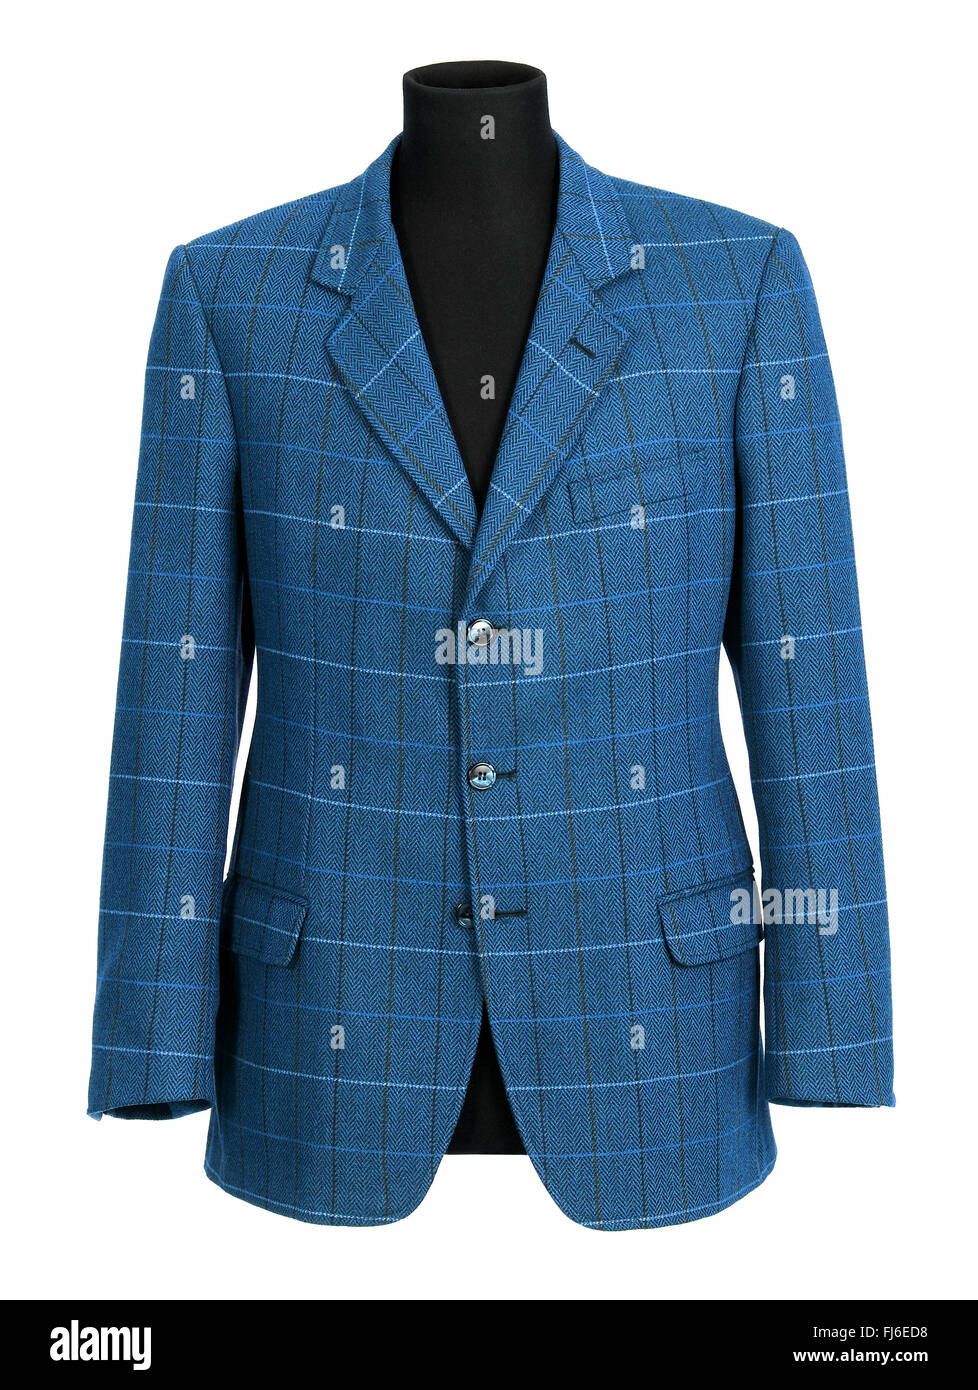 Stylish tailored blue jacket for a man with a checked pattern displayed on a half mannequin isolated on white - Stock Image